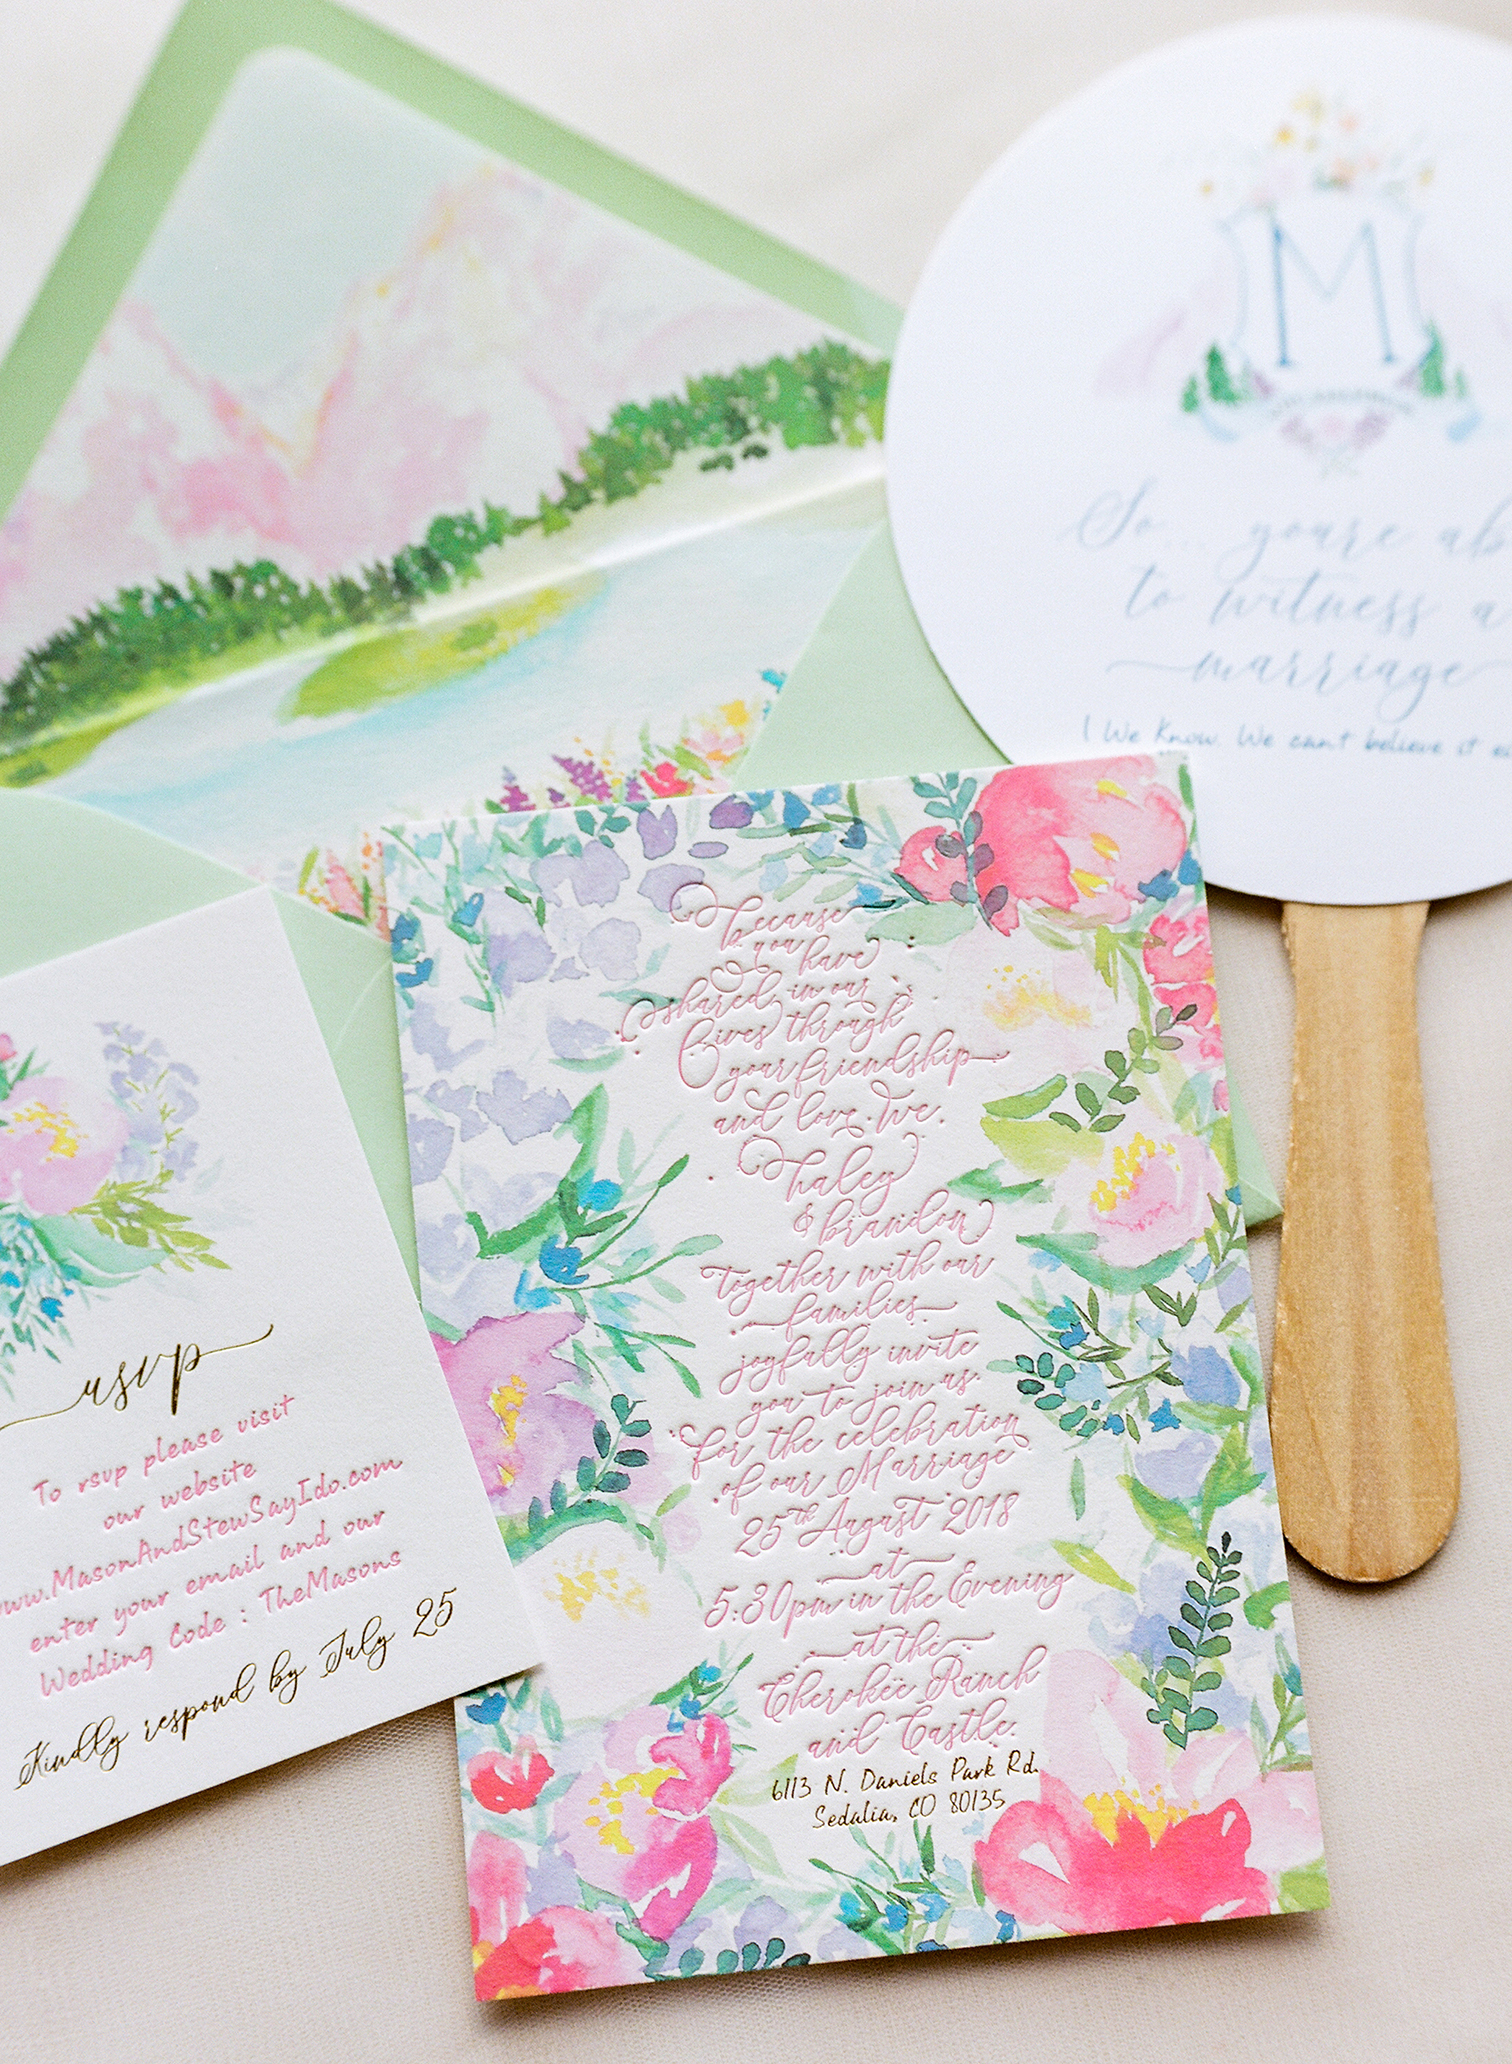 Wedding Photographers Colorado, Custom Wedding Invitations, Letterpress, Destination Weddings, Calligraphy Featured in Brides